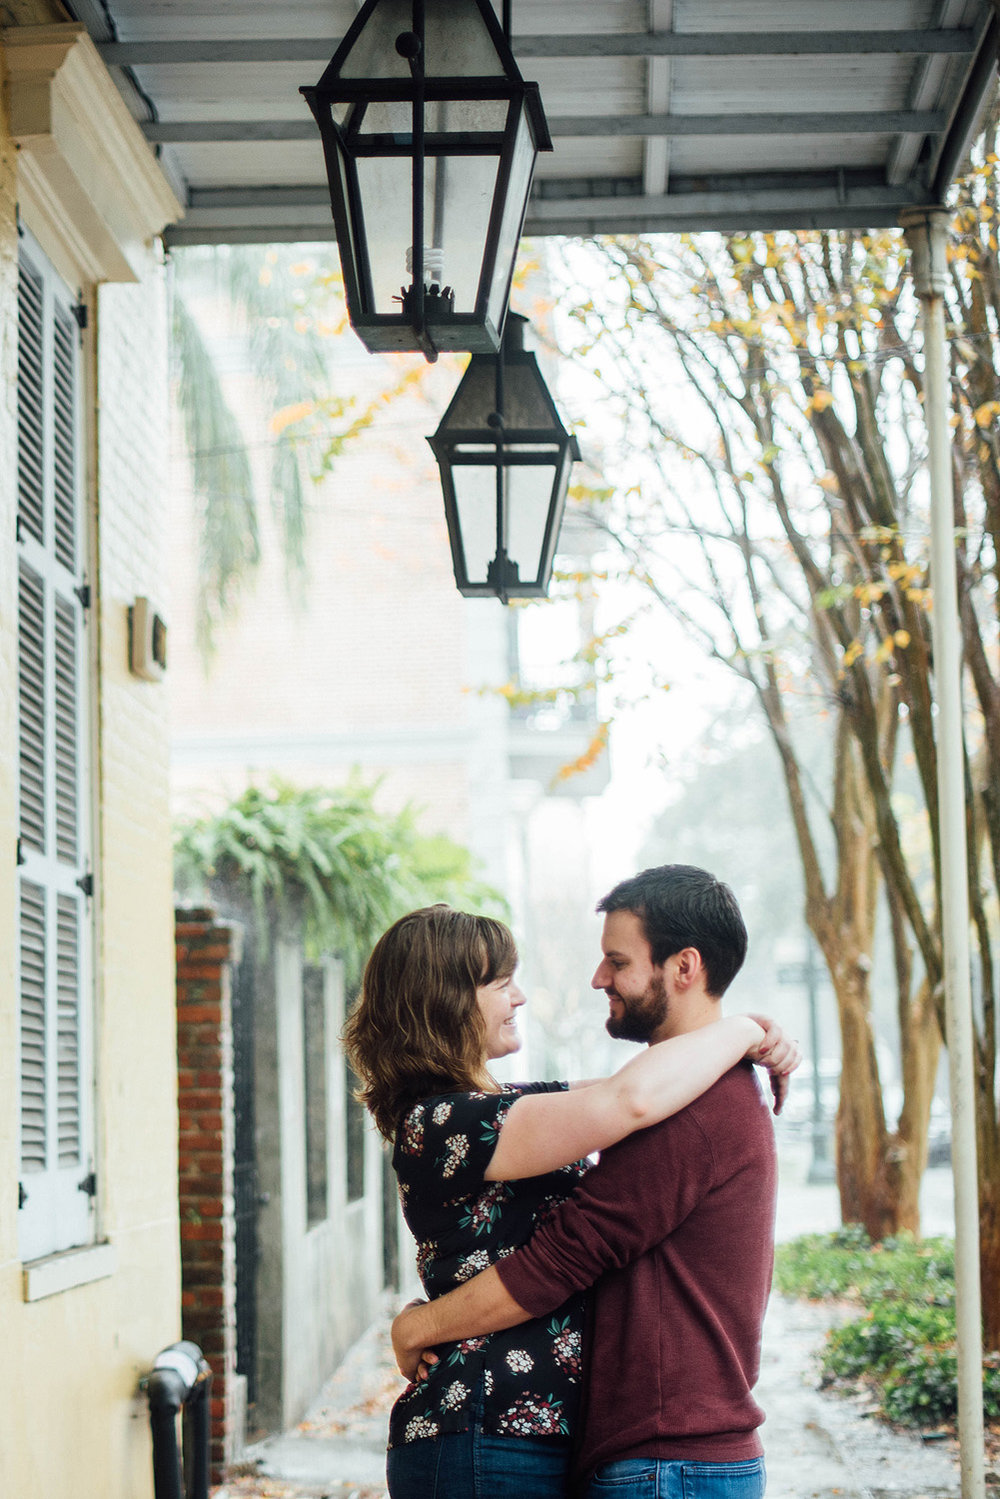 Max + Margaret-Rainy-New-Orleans-Engagement-Photos-Gabby-Chapin_PRINT_0089.jpg